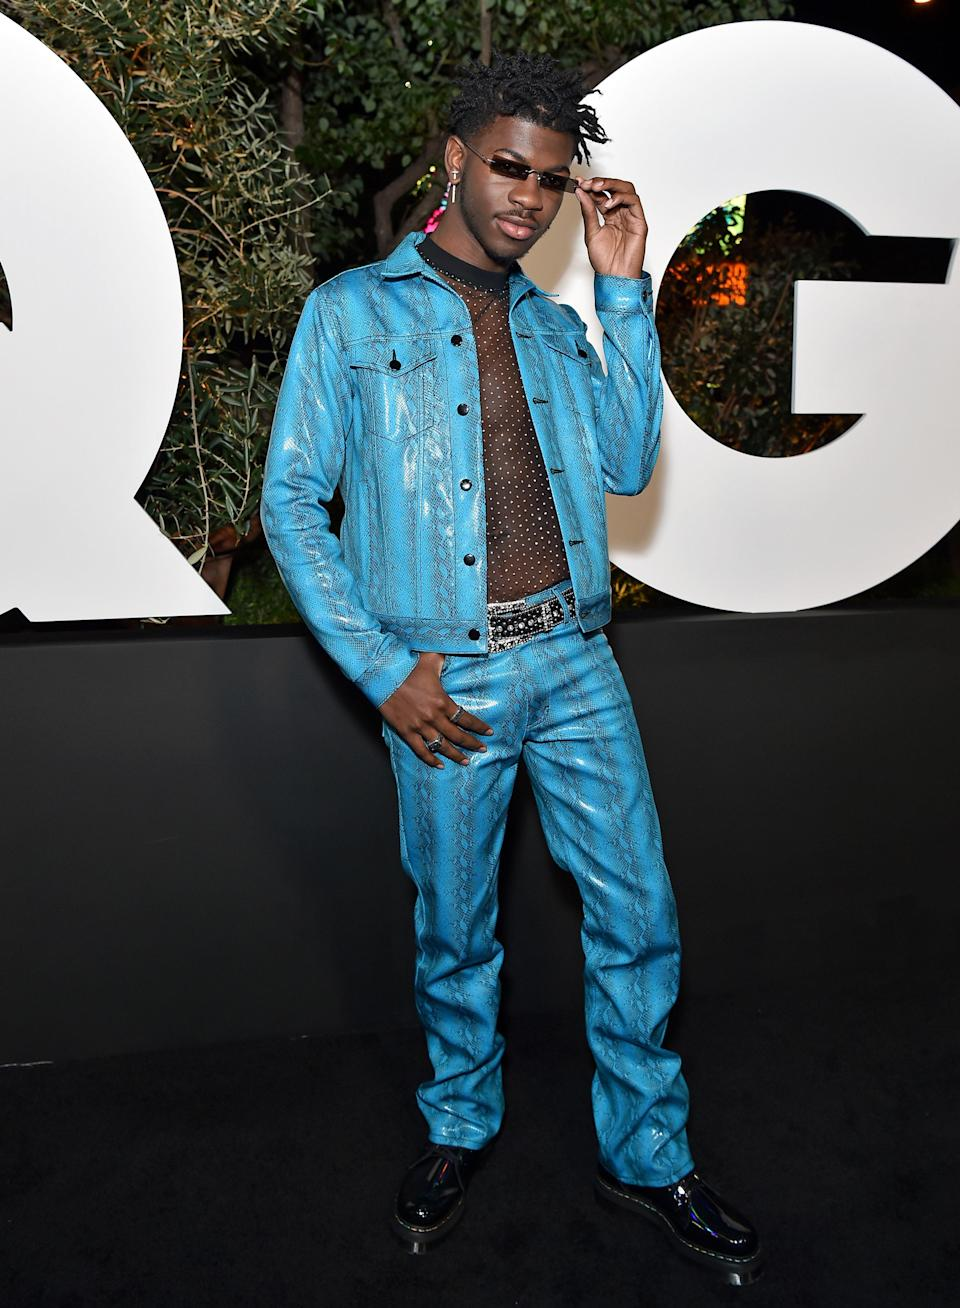 Lil Nas X served us major '00s glam with this full blue snakeskin outfit at 2019 GQ Men of the Year. Extra points for the tiny sunglasses and see-through shirt.